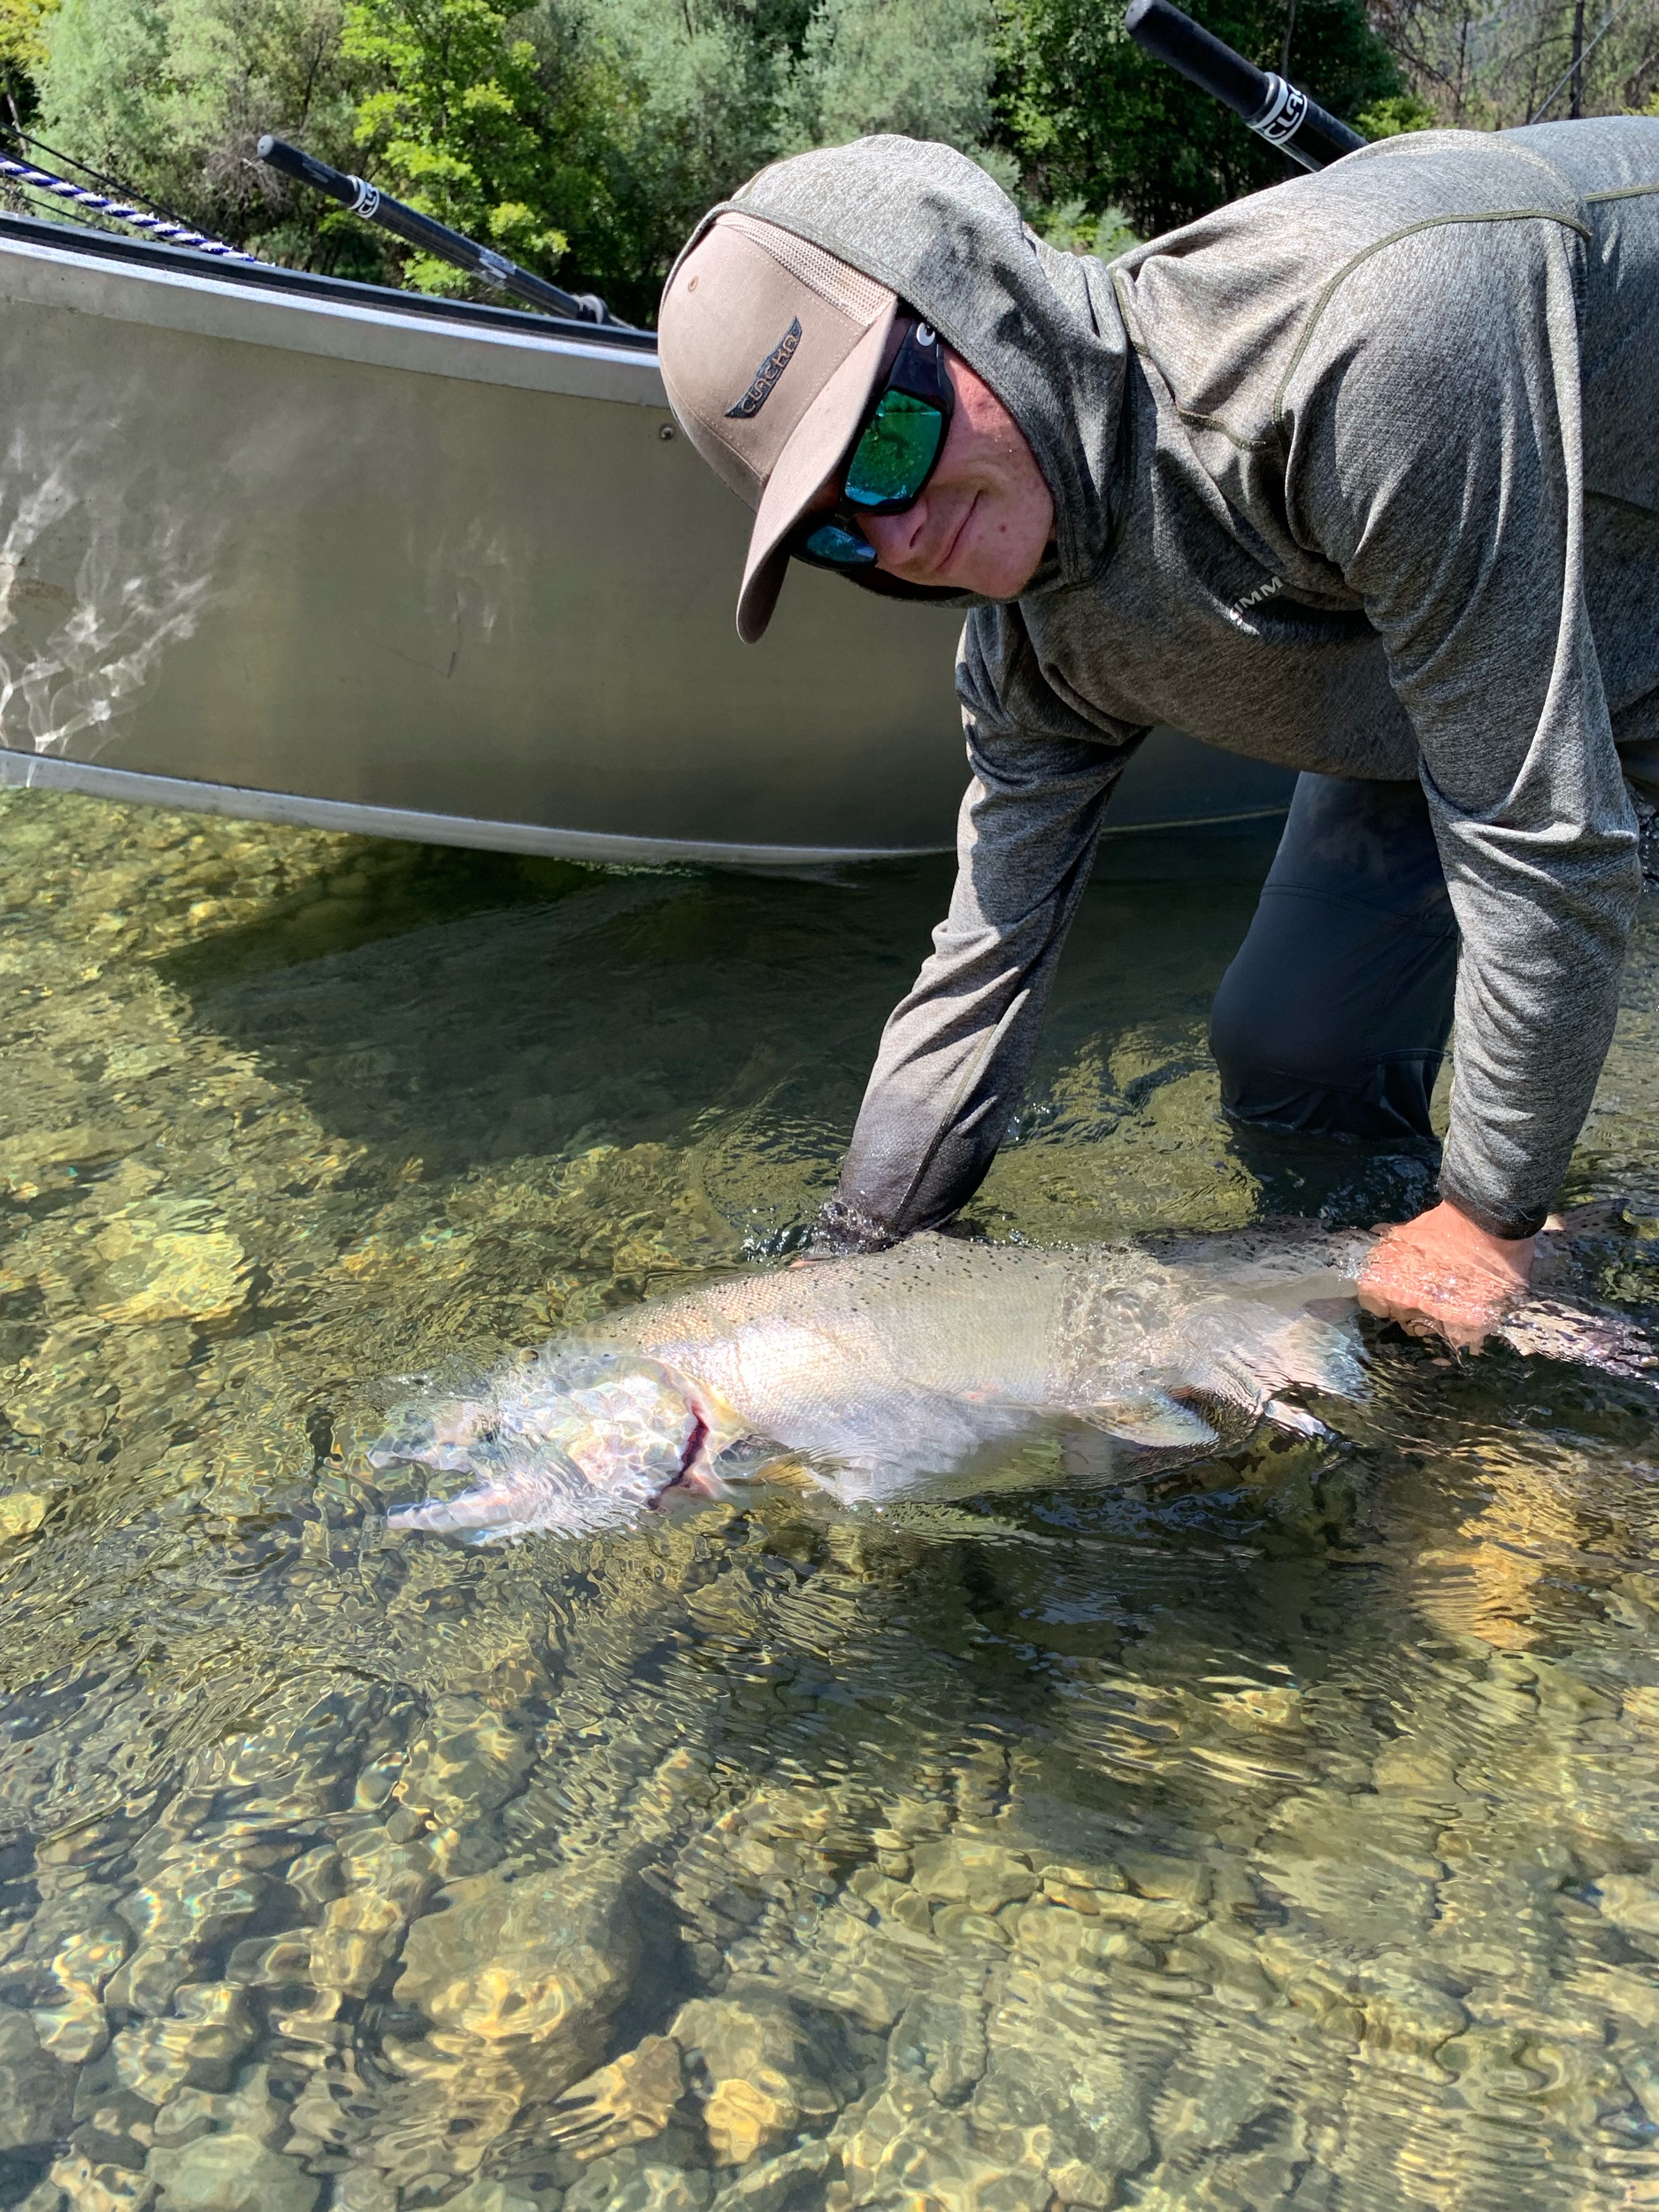 Salmon fishing guide Ryan Tripp reviving and releasing a beautiful Trinity River spring run chinook salmon. July 8, 2019